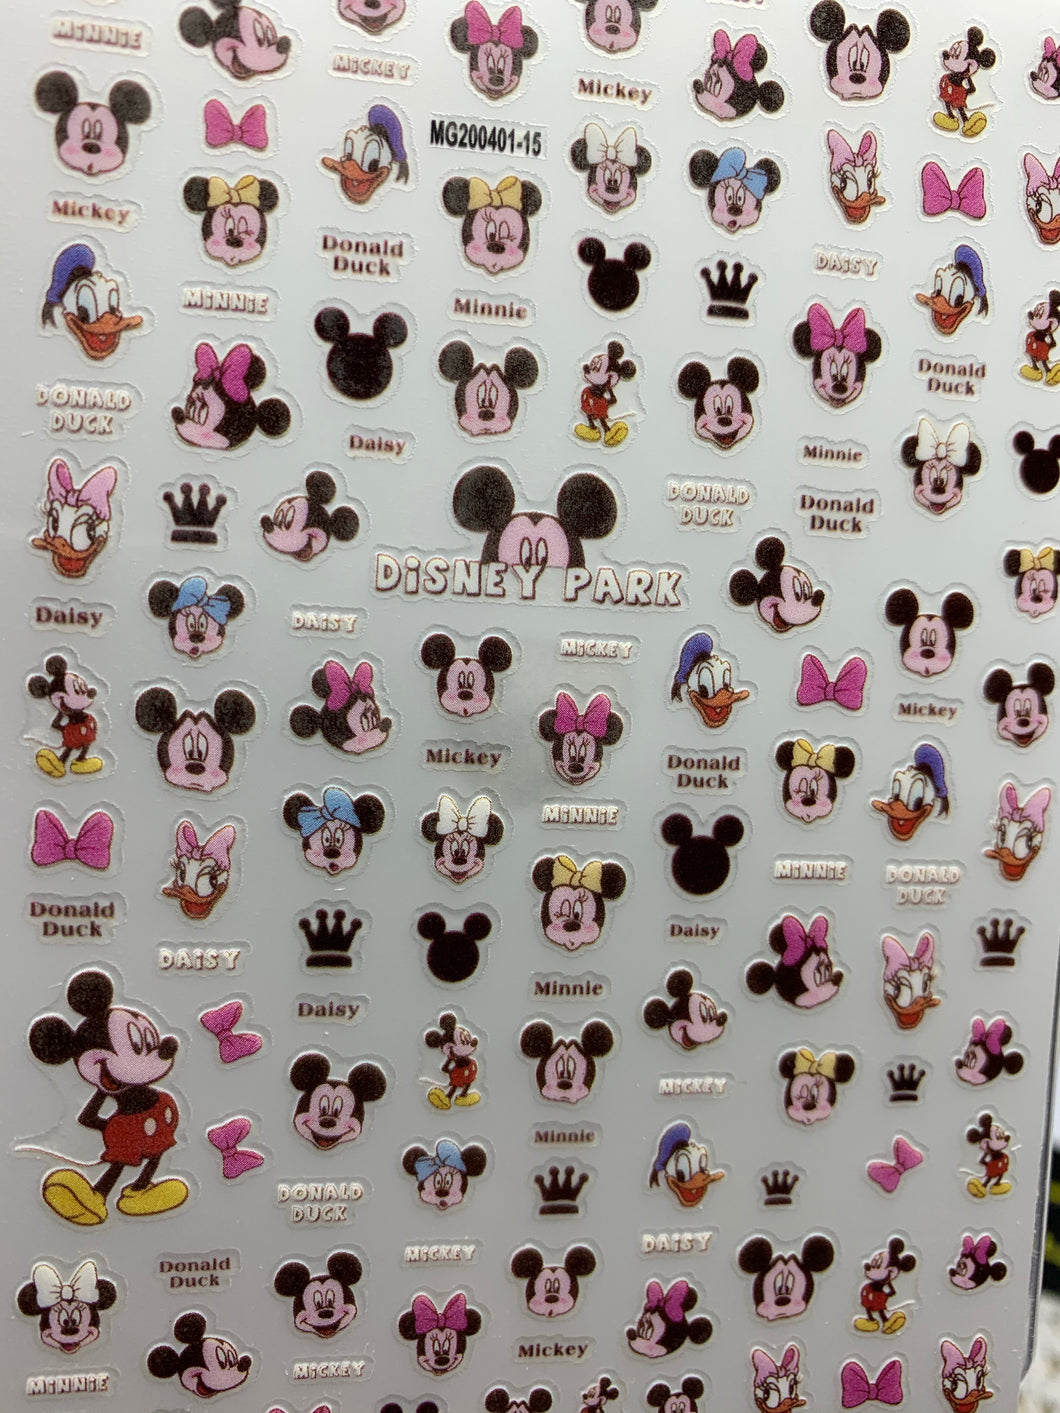 Mickey sticker MG200401-15